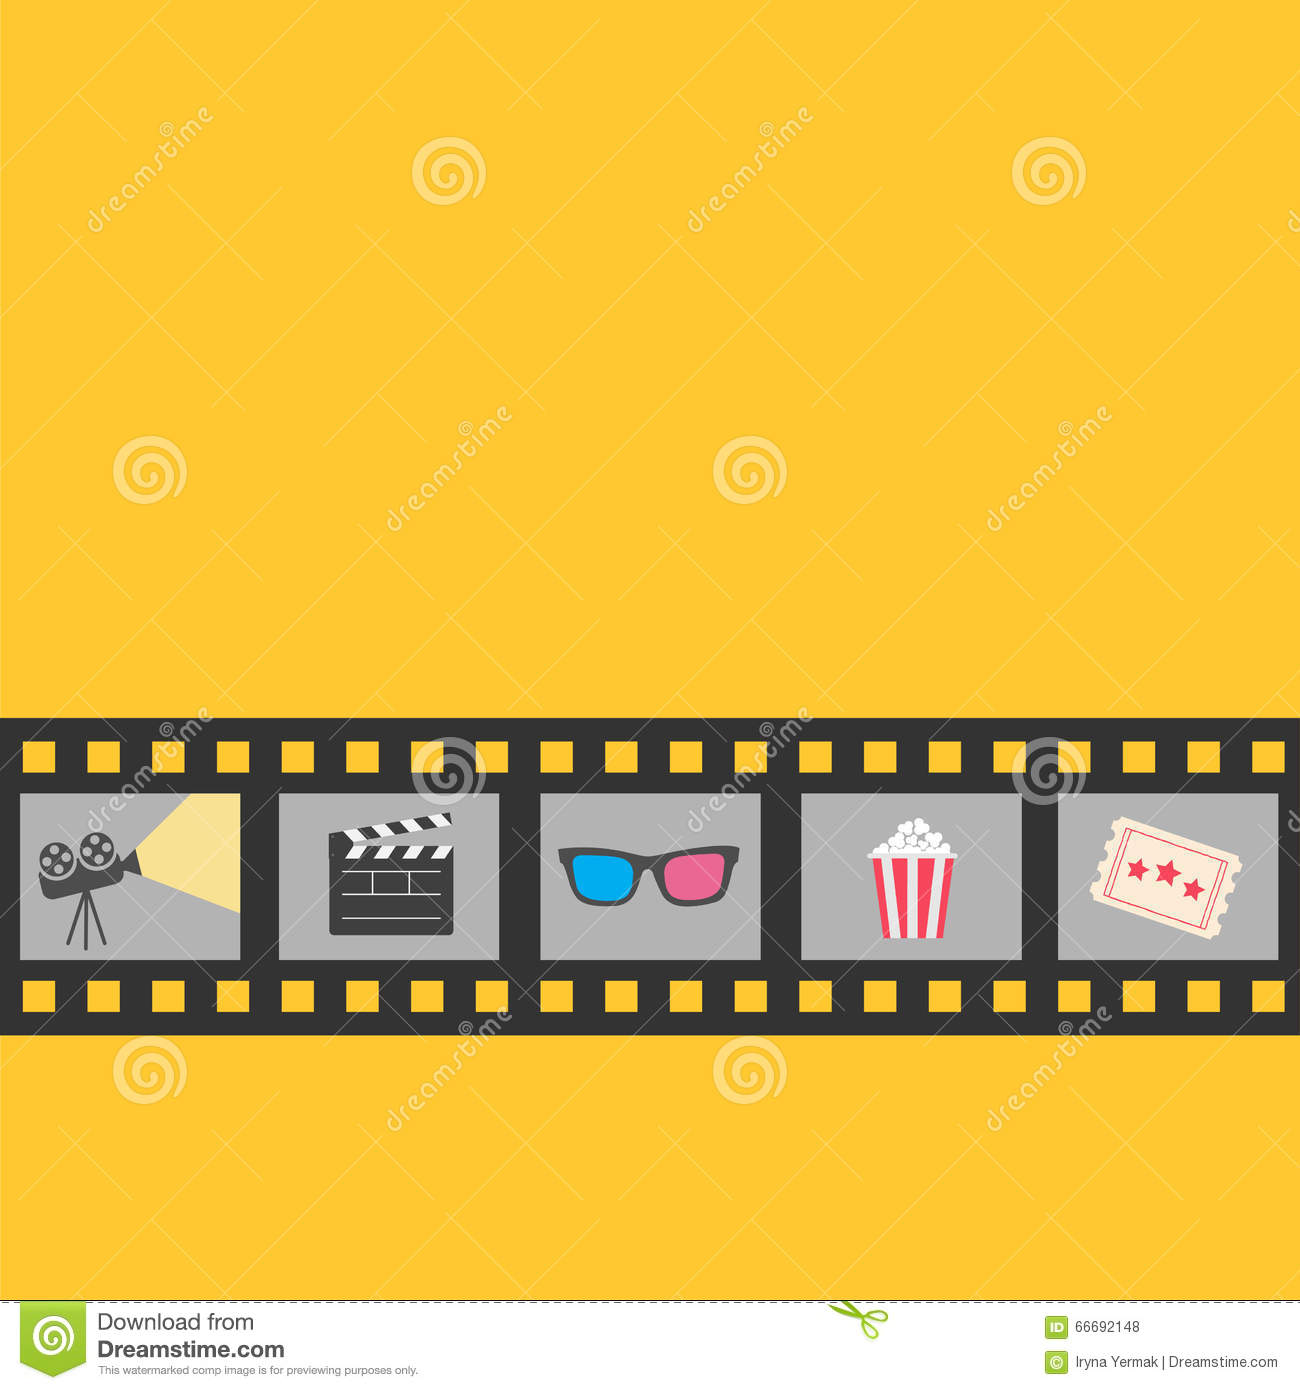 Film strip icon set popcorn clapper board 3d glasses for 3d flat design online